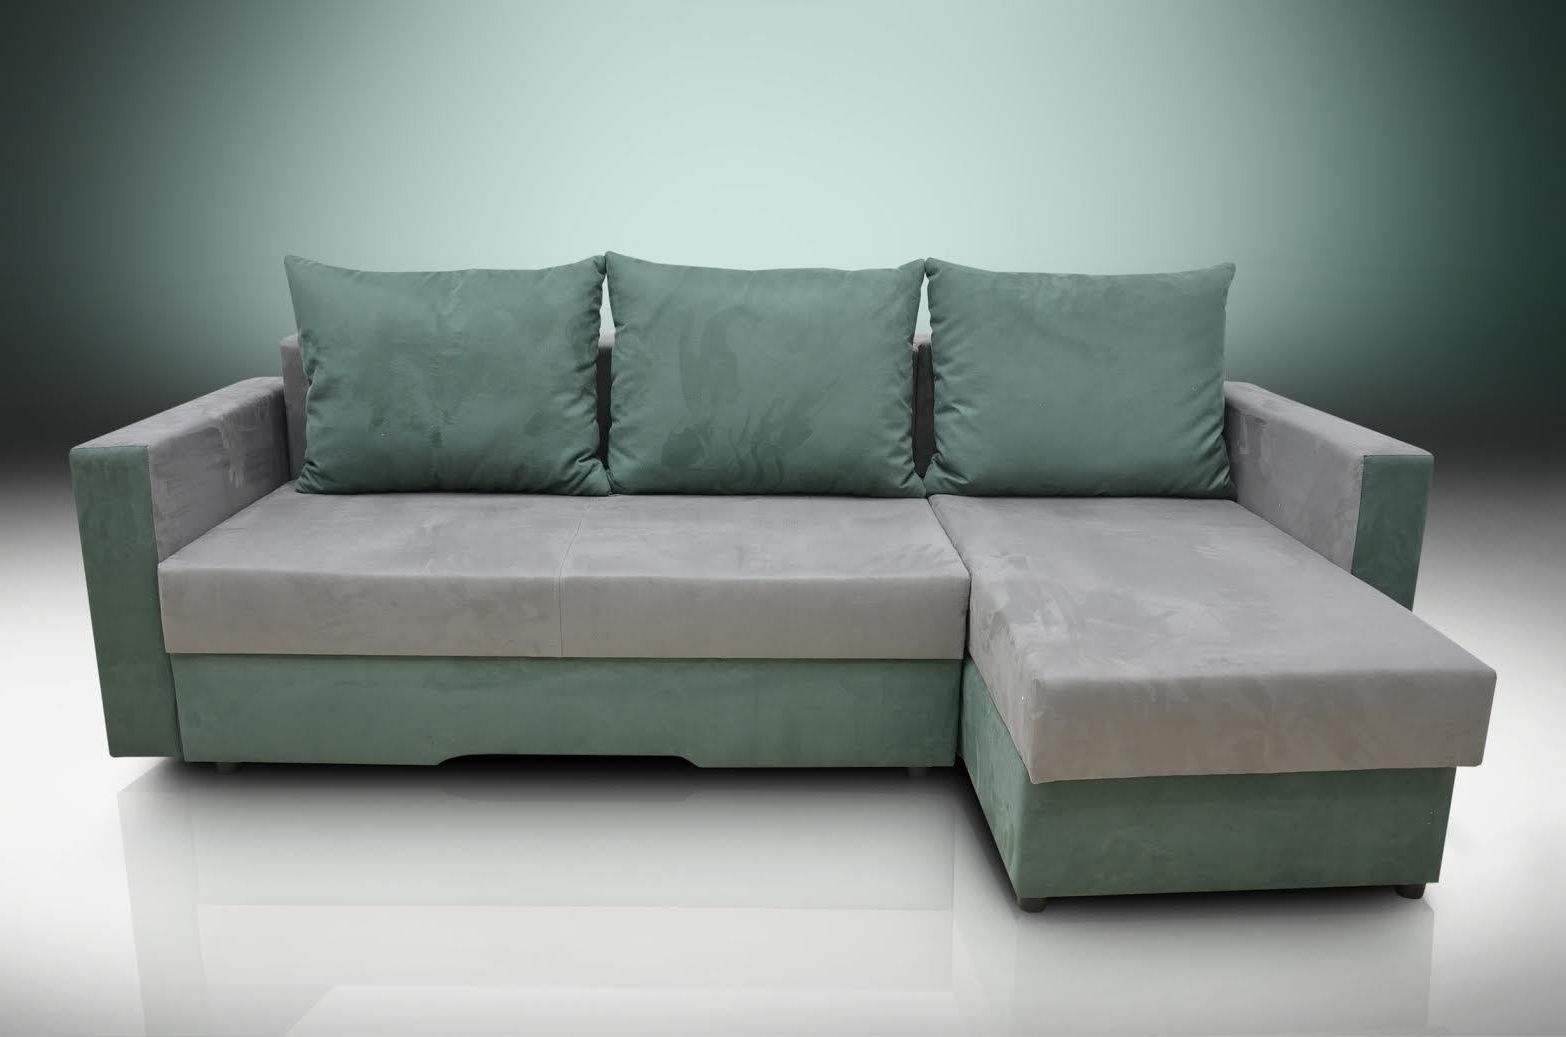 Sofa Bed Bristol Grey/forest Green Faux Suede Fabric Pertaining To 2019 Faux Suede Sofas (View 18 of 20)